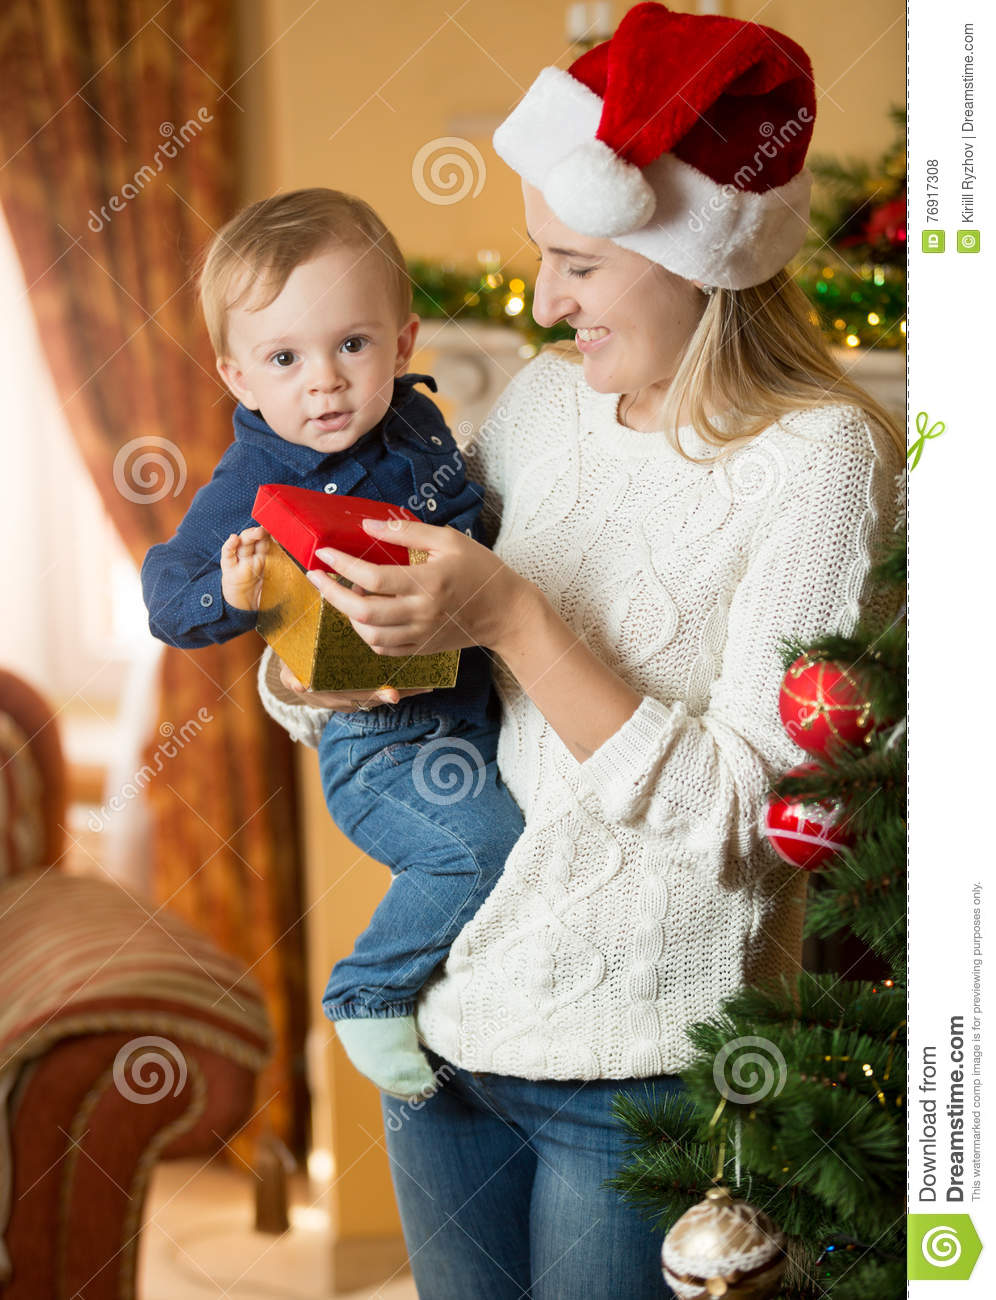 Happy young mother giving gift box to her baby boy at Christmas